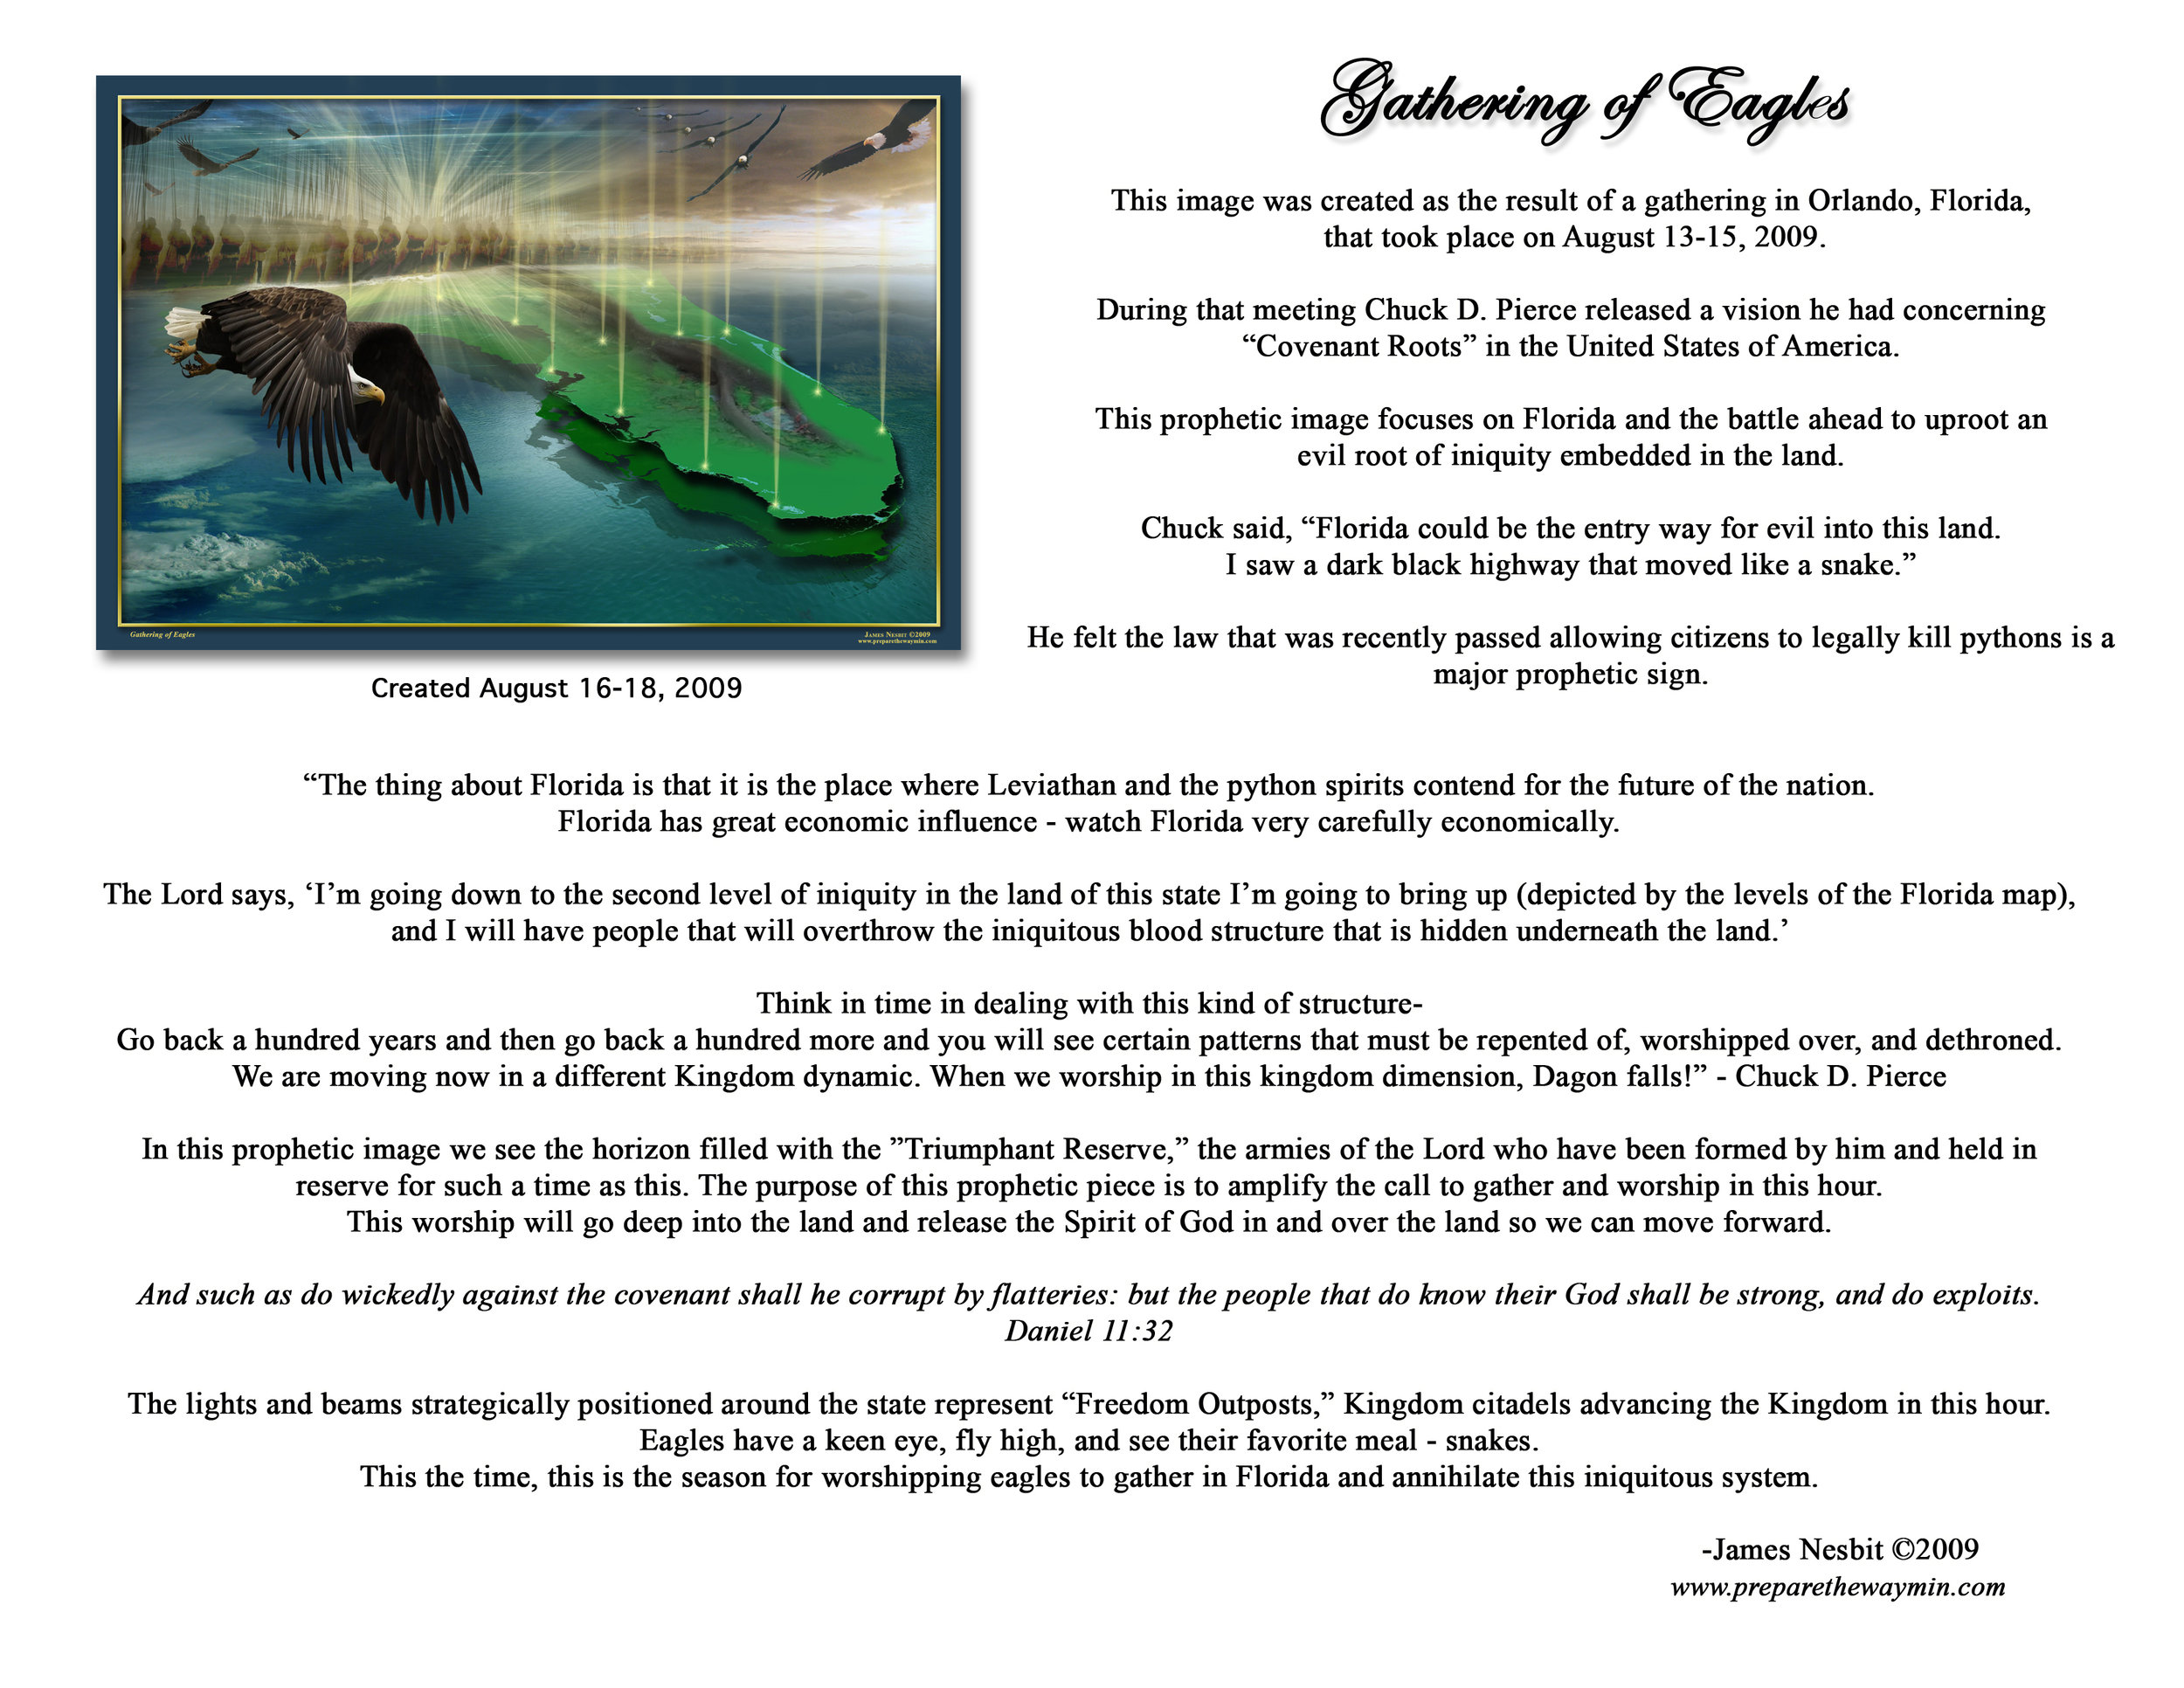 Gathering of Eagles Description copy.jpg